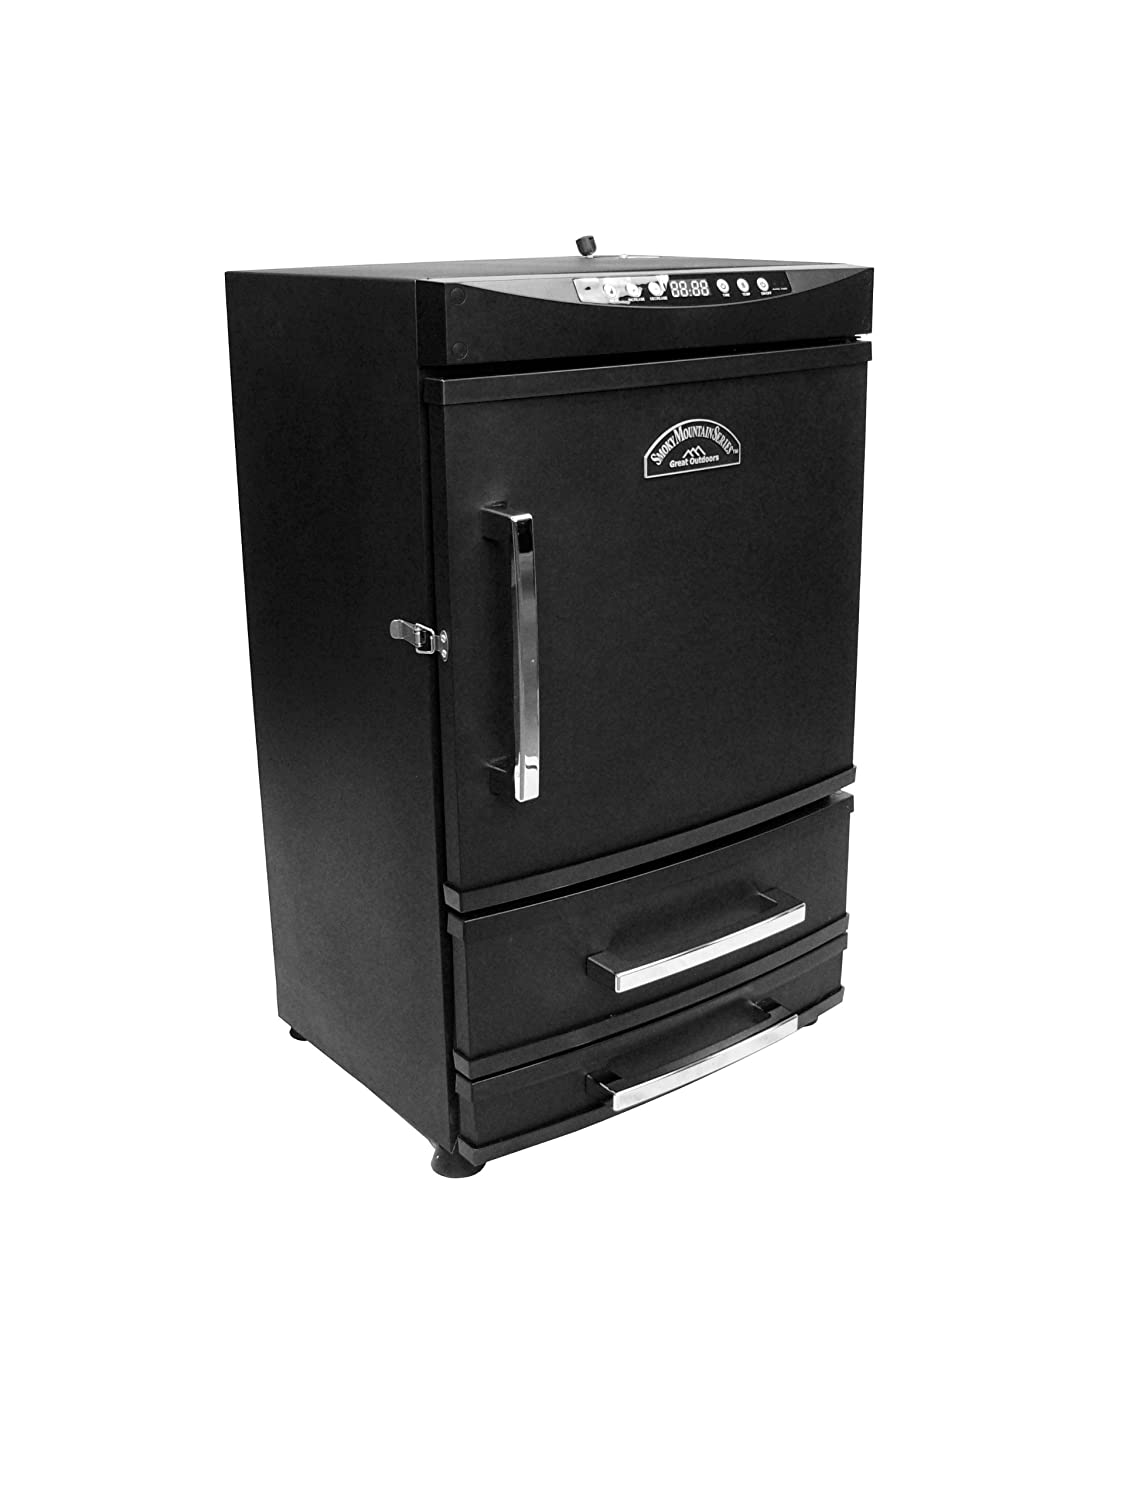 Landmann USA 32910 Smoky Mountain Vertical Electric Smoker 32-Inch Review